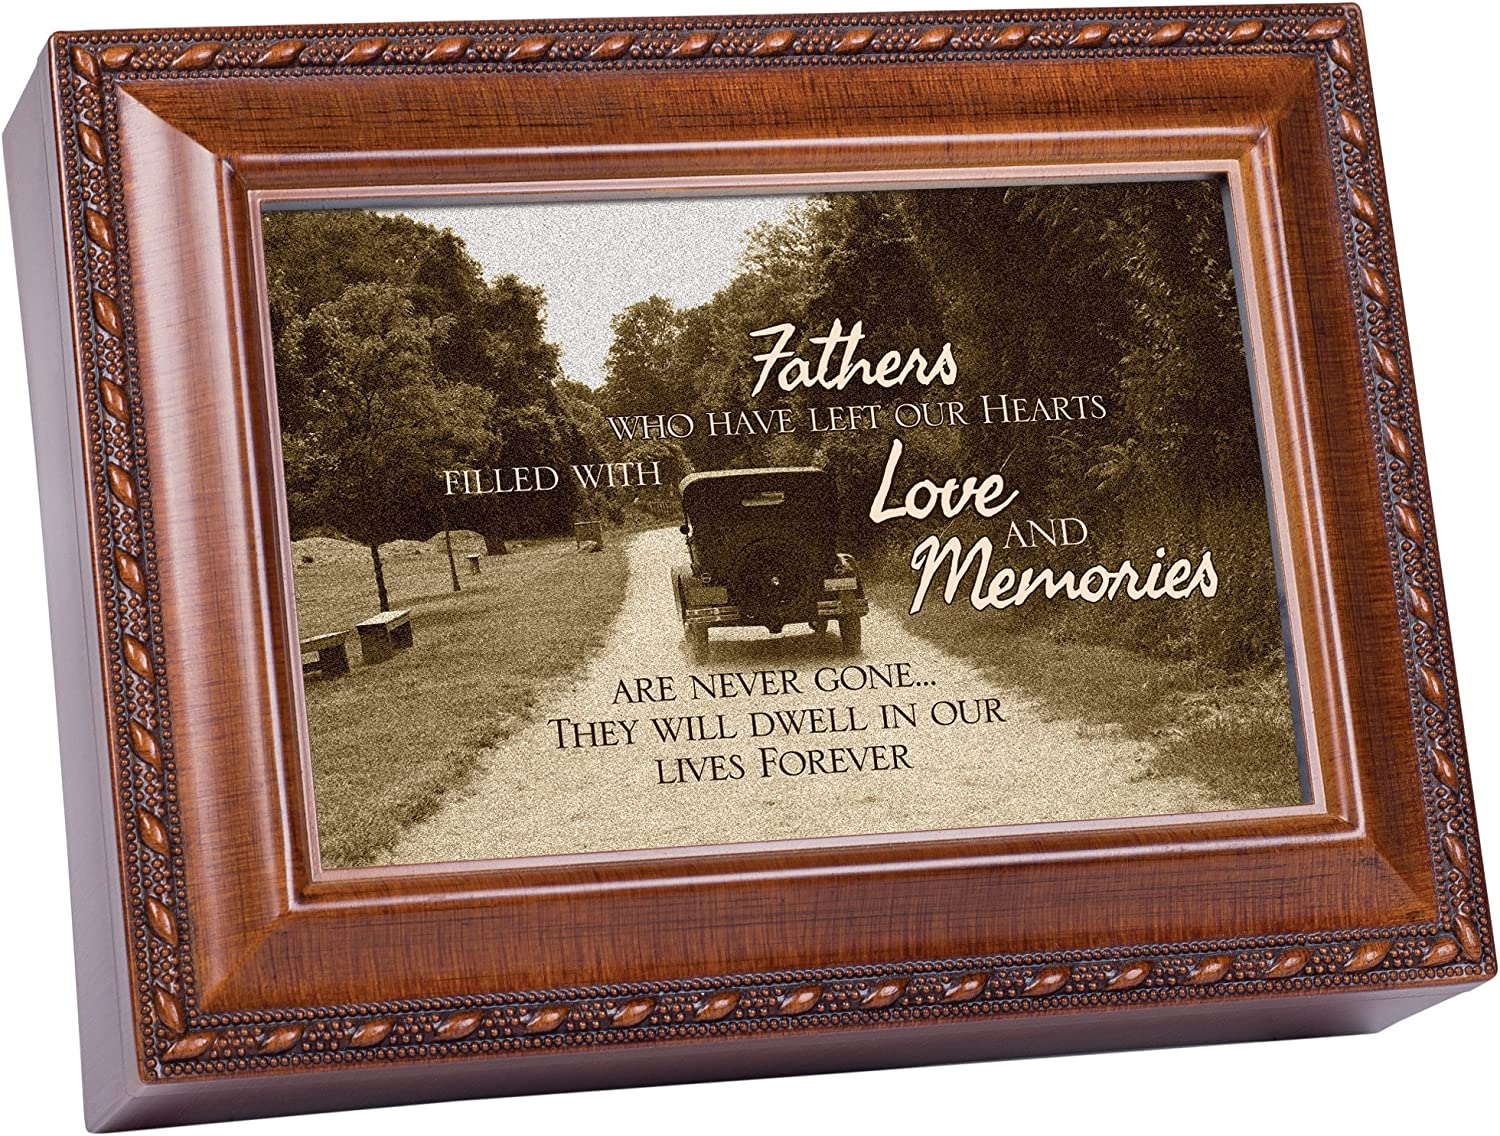 Cottage Garden Fathers Love and Memories Bereavement Woodgrain Rope Trim Music Box Plays Amazing Grace